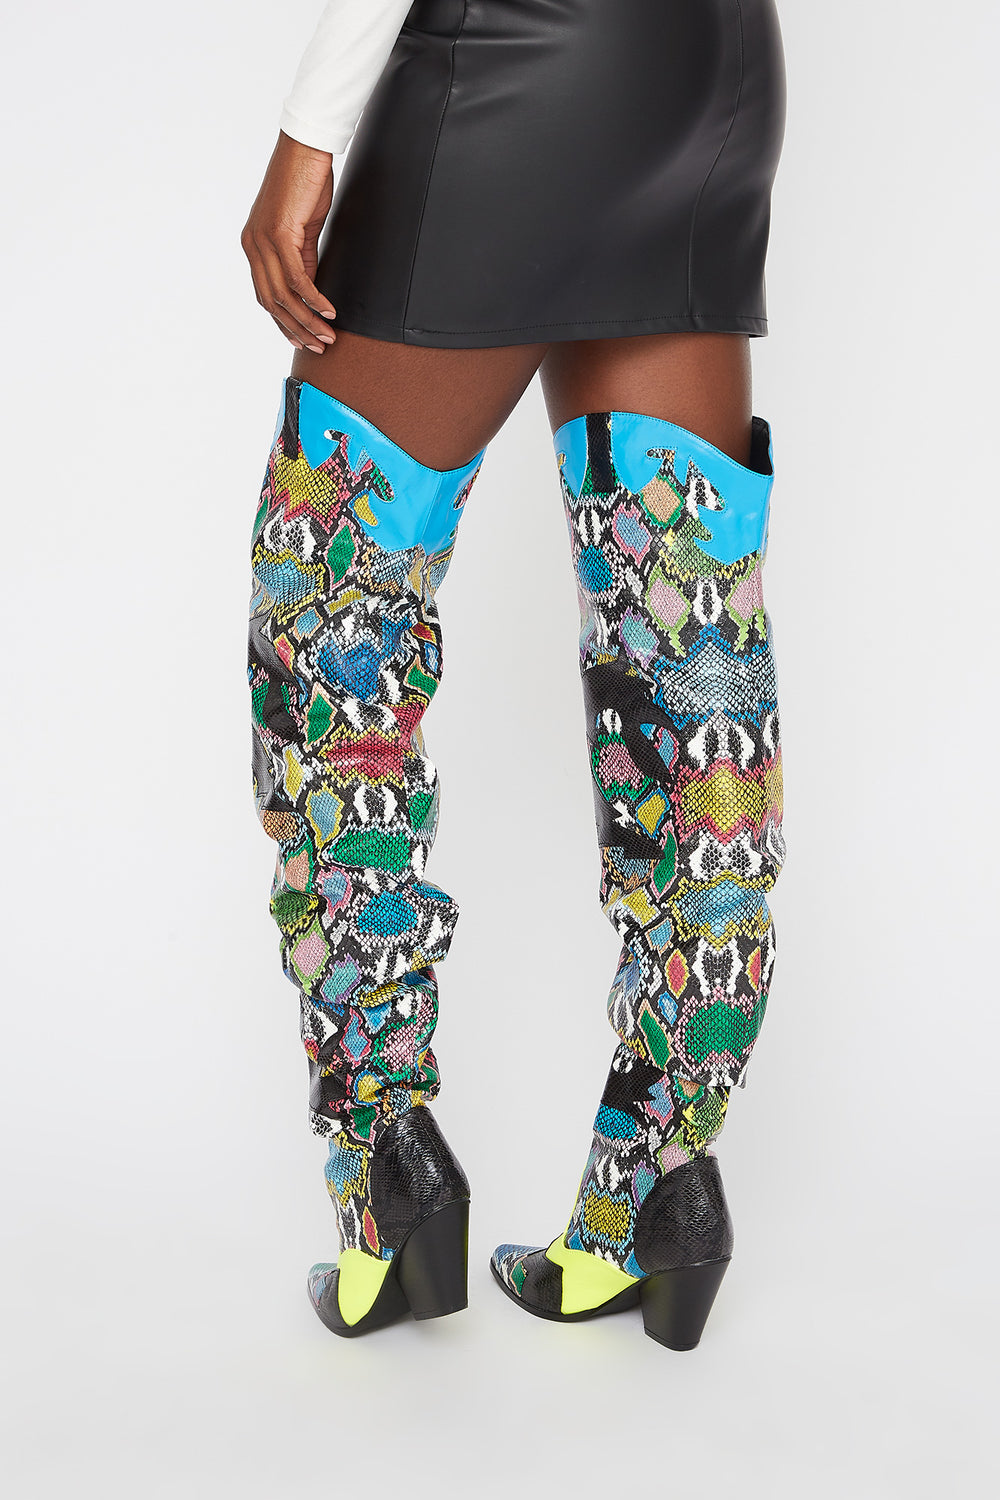 Cowboy Snake Ruched Thigh High Boot Multi